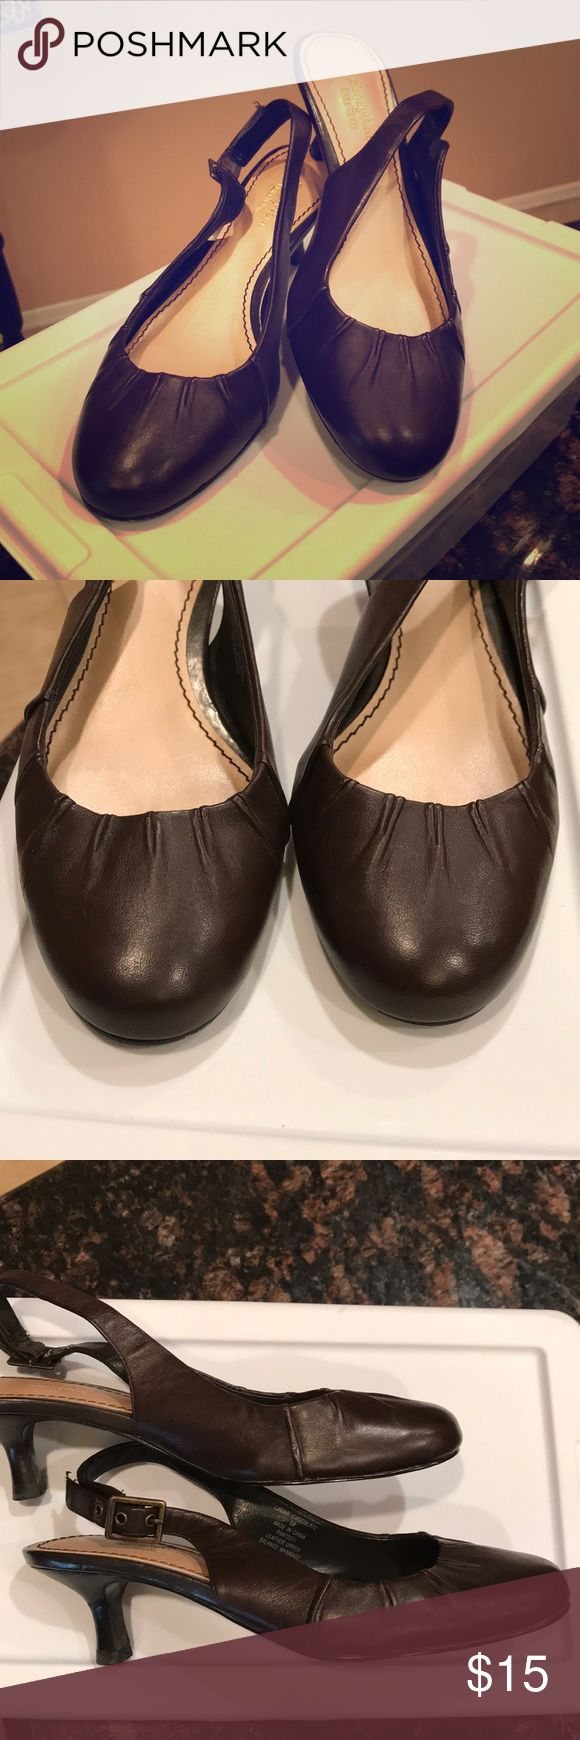 Simply Vera Wang brown leather sling backs 6M These Simply Vera brown leather kitten heel sling backs have a classic look that pair well with pants or skirts.  Minor scuff along the side that is hard to see unless you are up close.   Ships in sterilite shoe box Simply Vera Vera Wang Shoes Heels